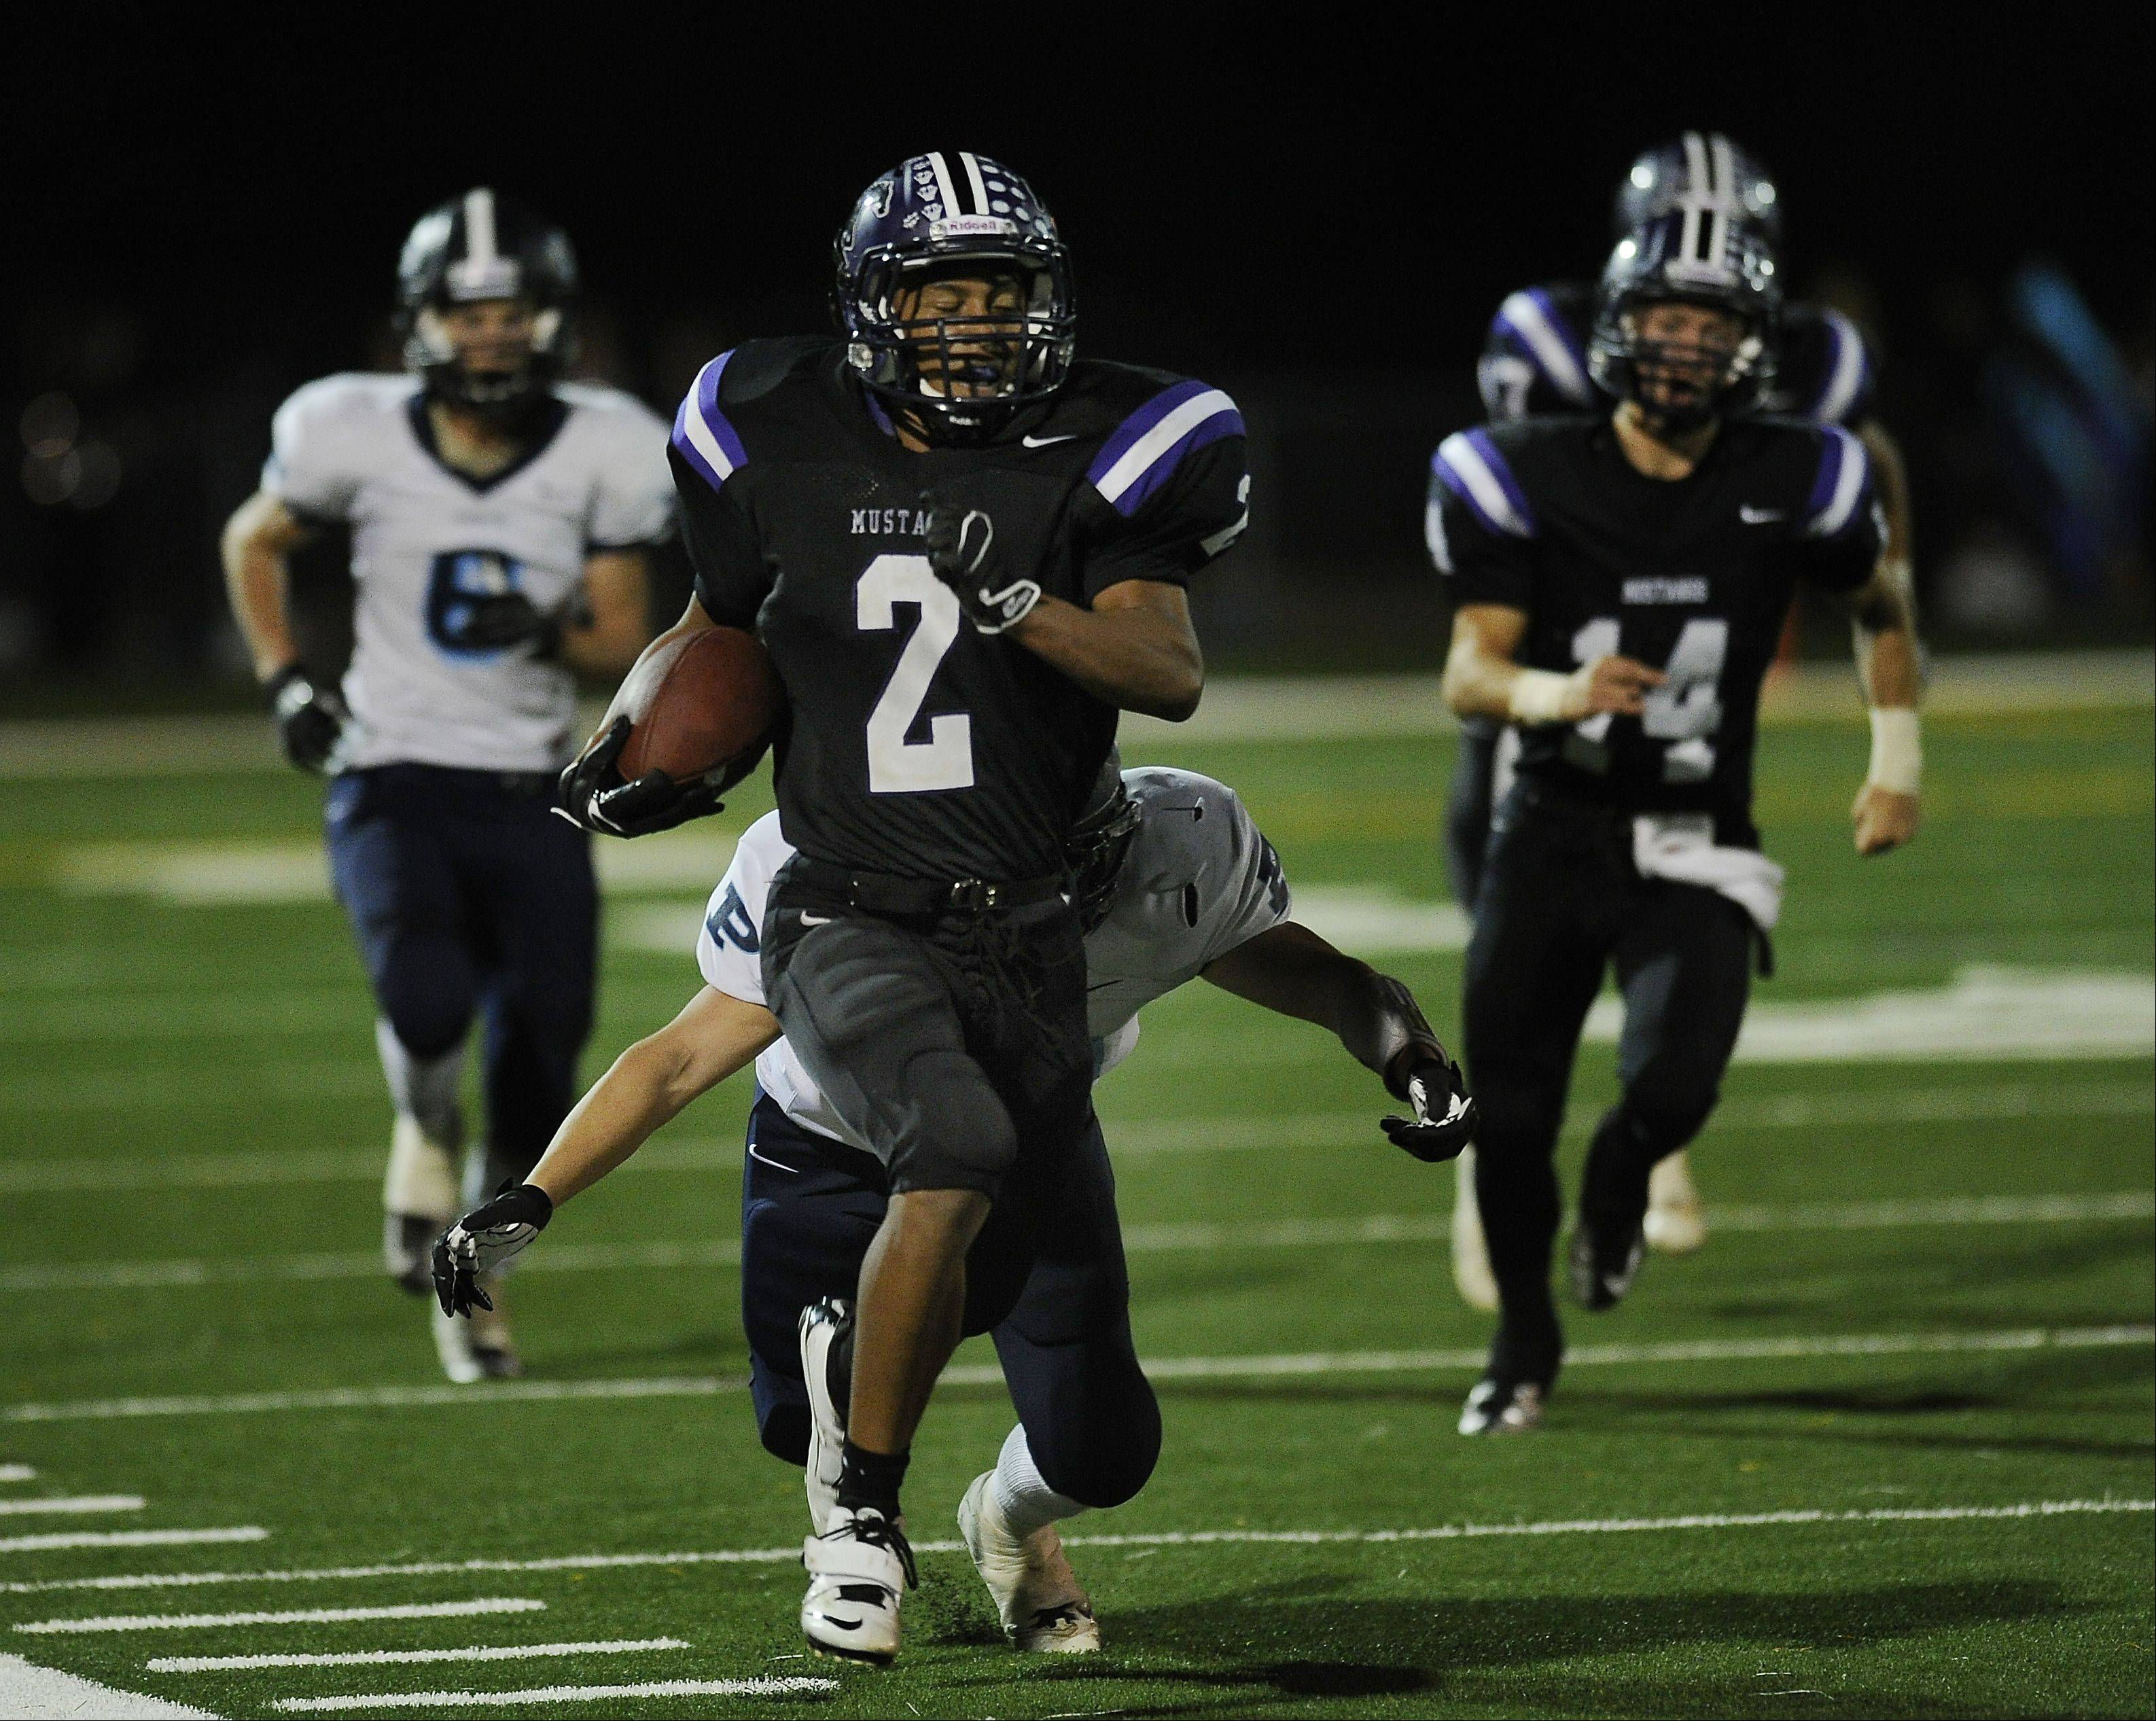 Rolling Meadows Andre Campbell runs the ball in the first half.